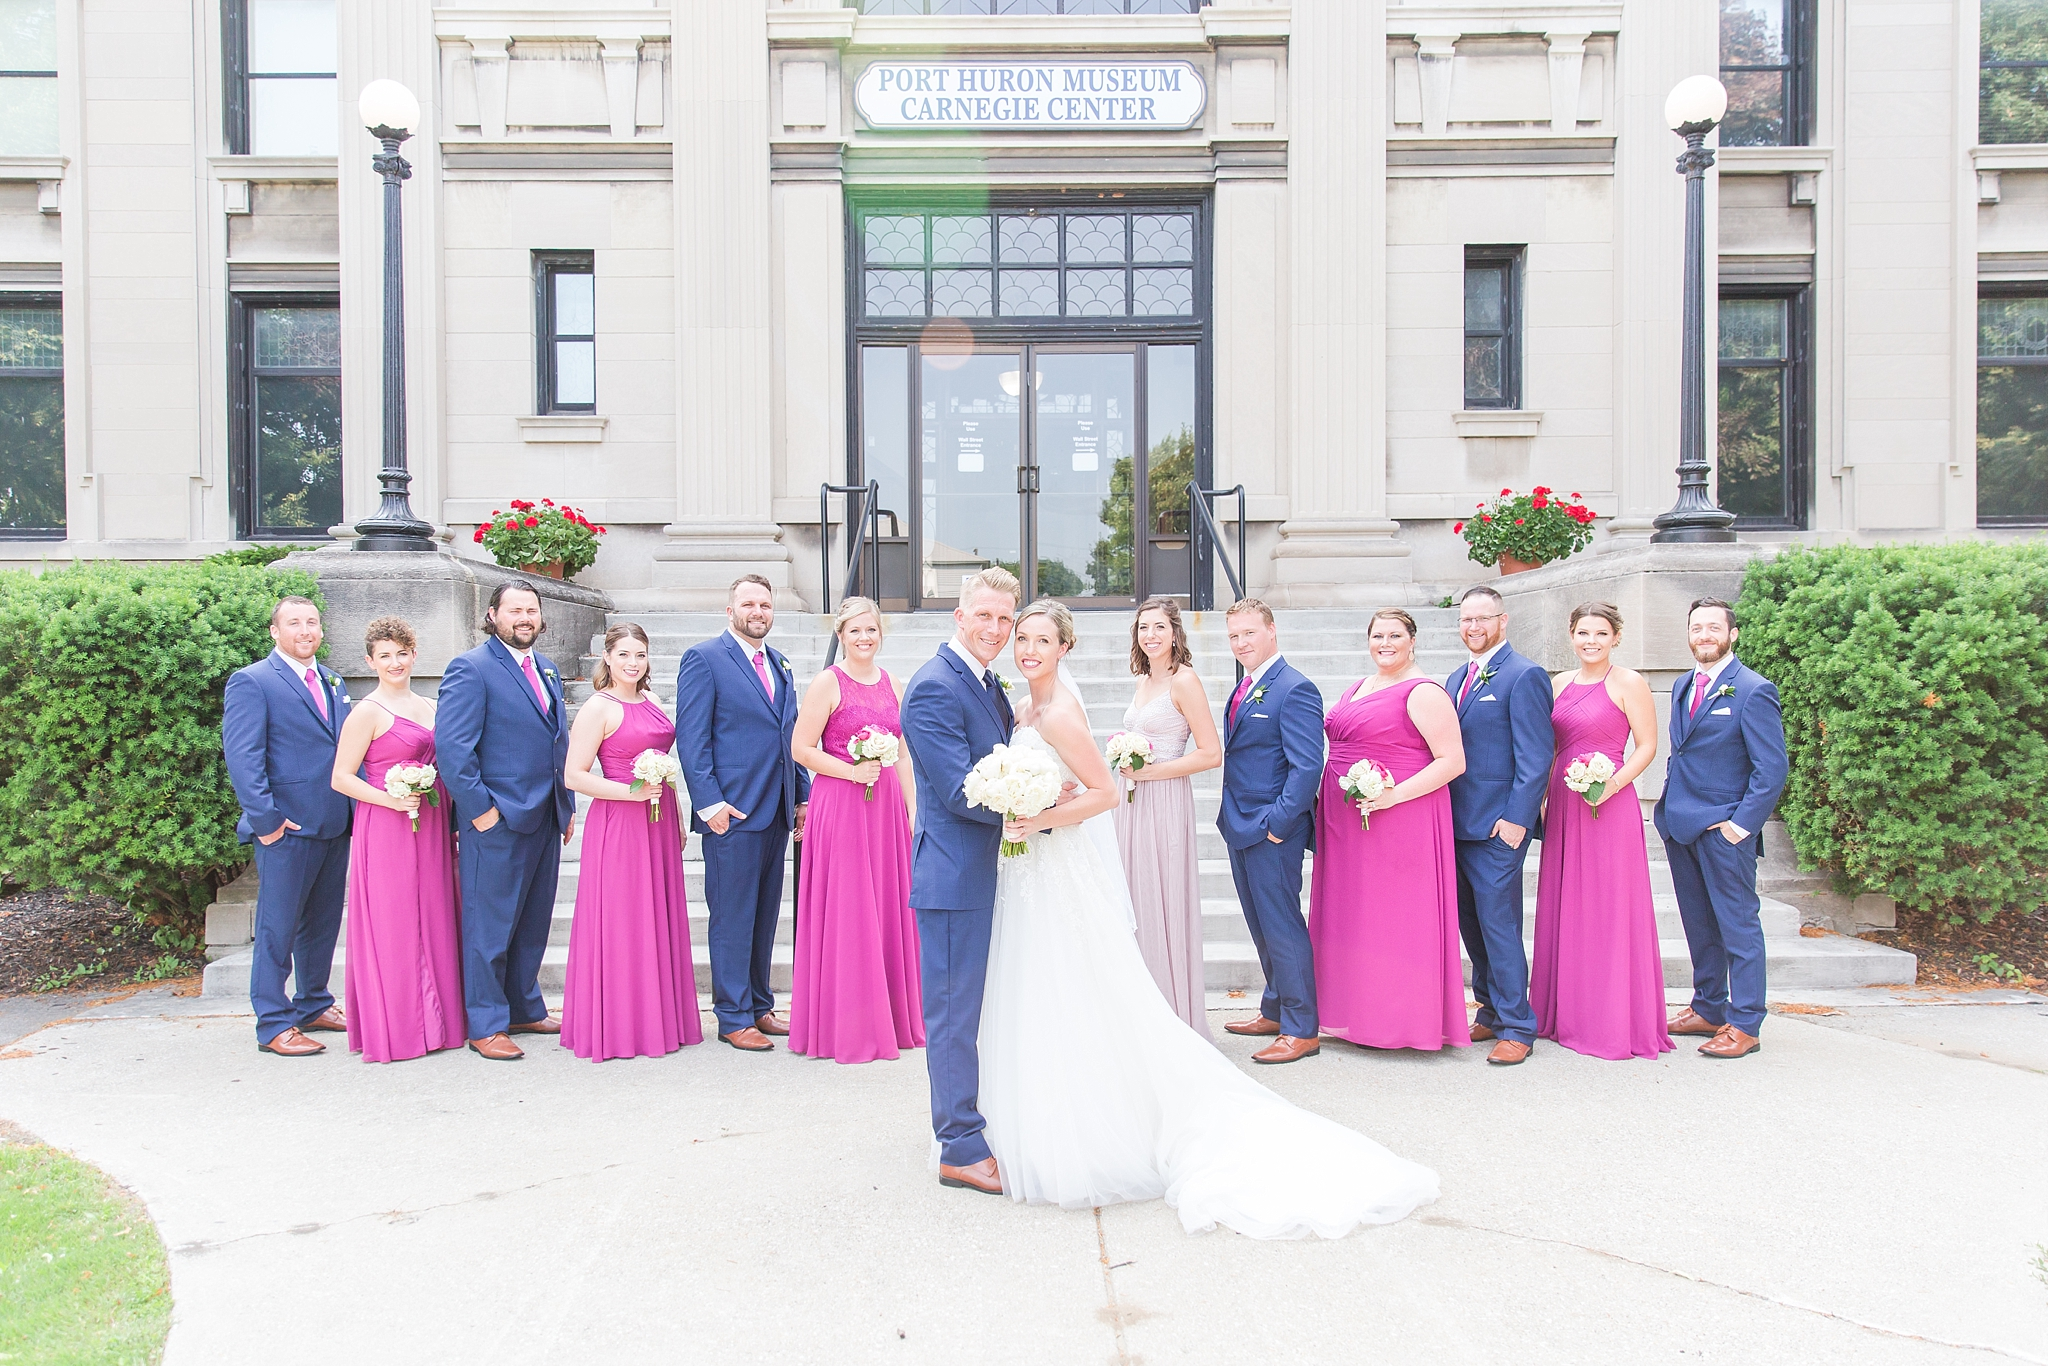 fun-nautical-wedding-photos-at-the-bean-dock-in-downtown-port-huron-michigan-by-courtney-carolyn-photography_0059.jpg